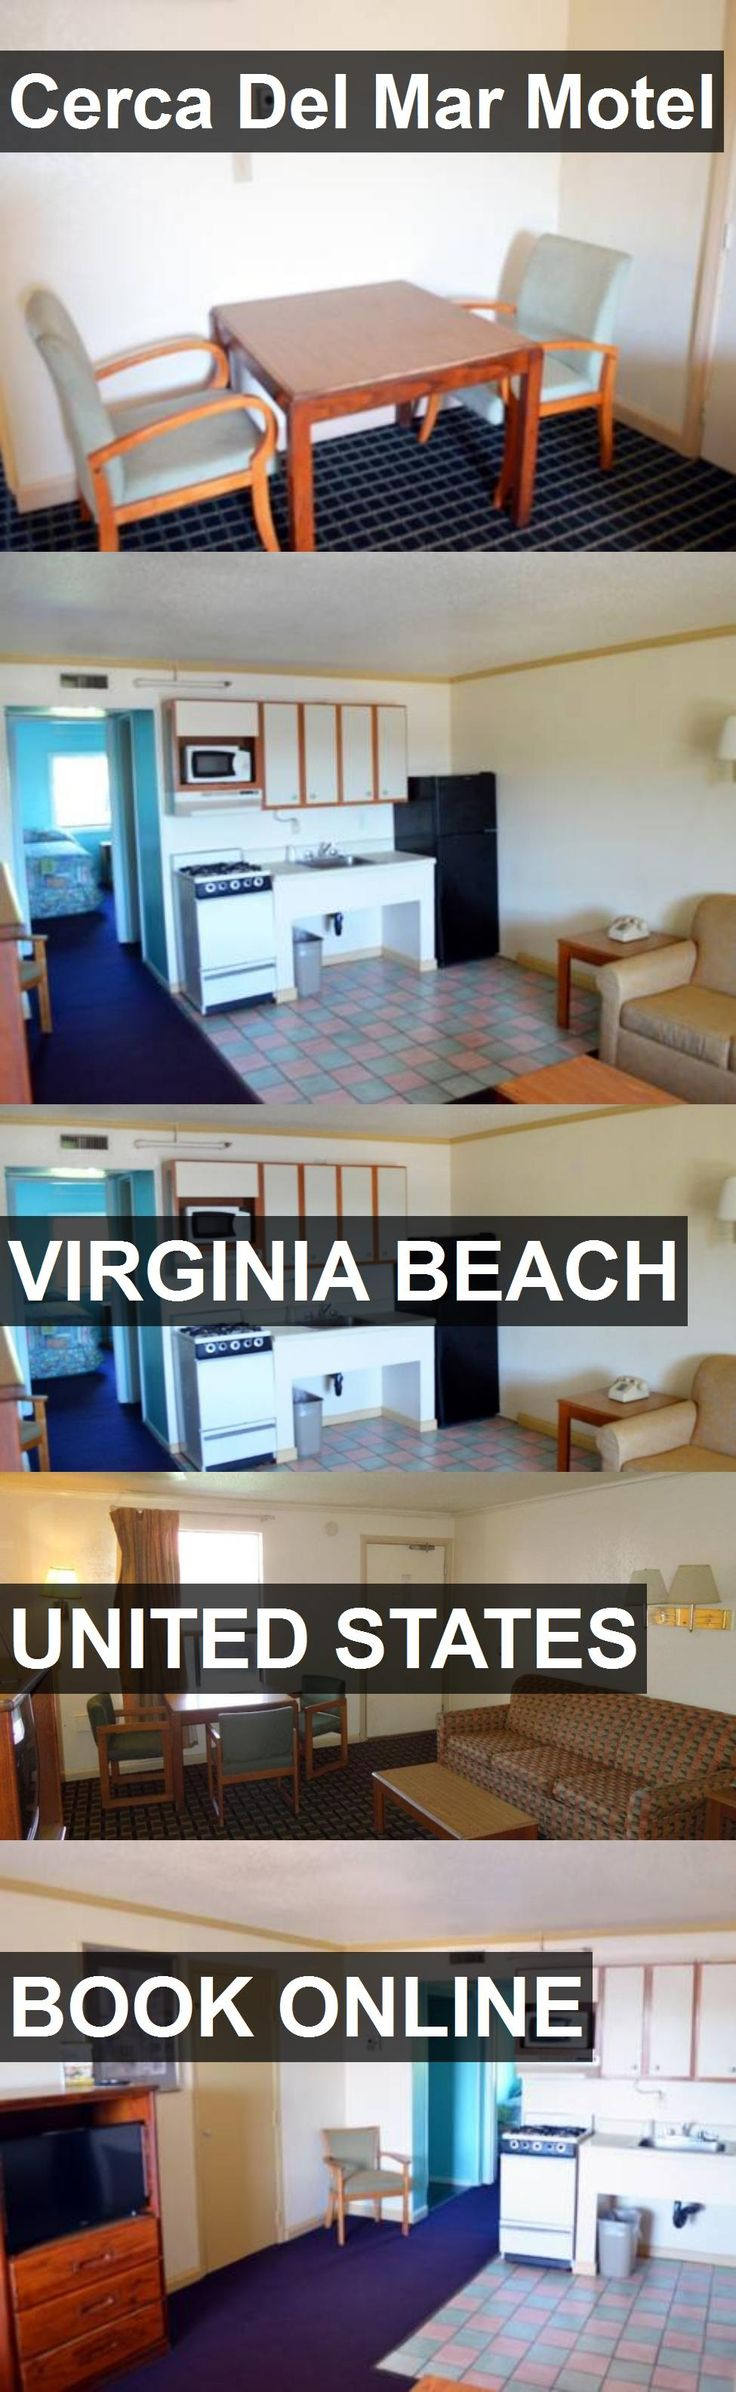 Hotel Cerca Del Mar Motel in Virginia Beach, United States. For more information, photos, reviews and best prices please follow the link. #UnitedStates #VirginiaBeach #travel #vacation #hotel